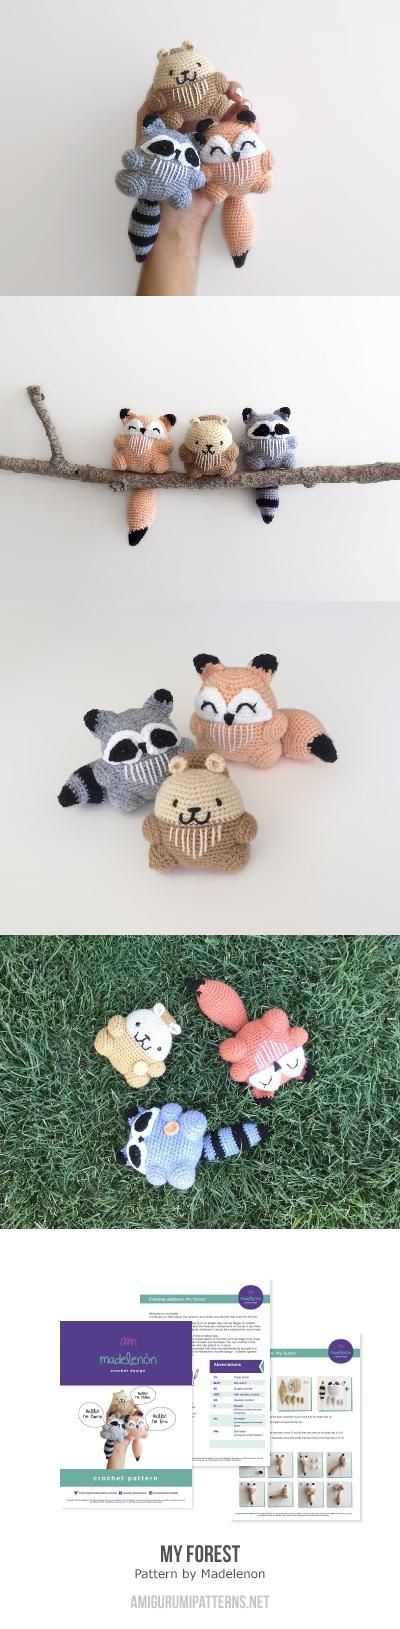 My forest amigurumi pattern by Madelenon